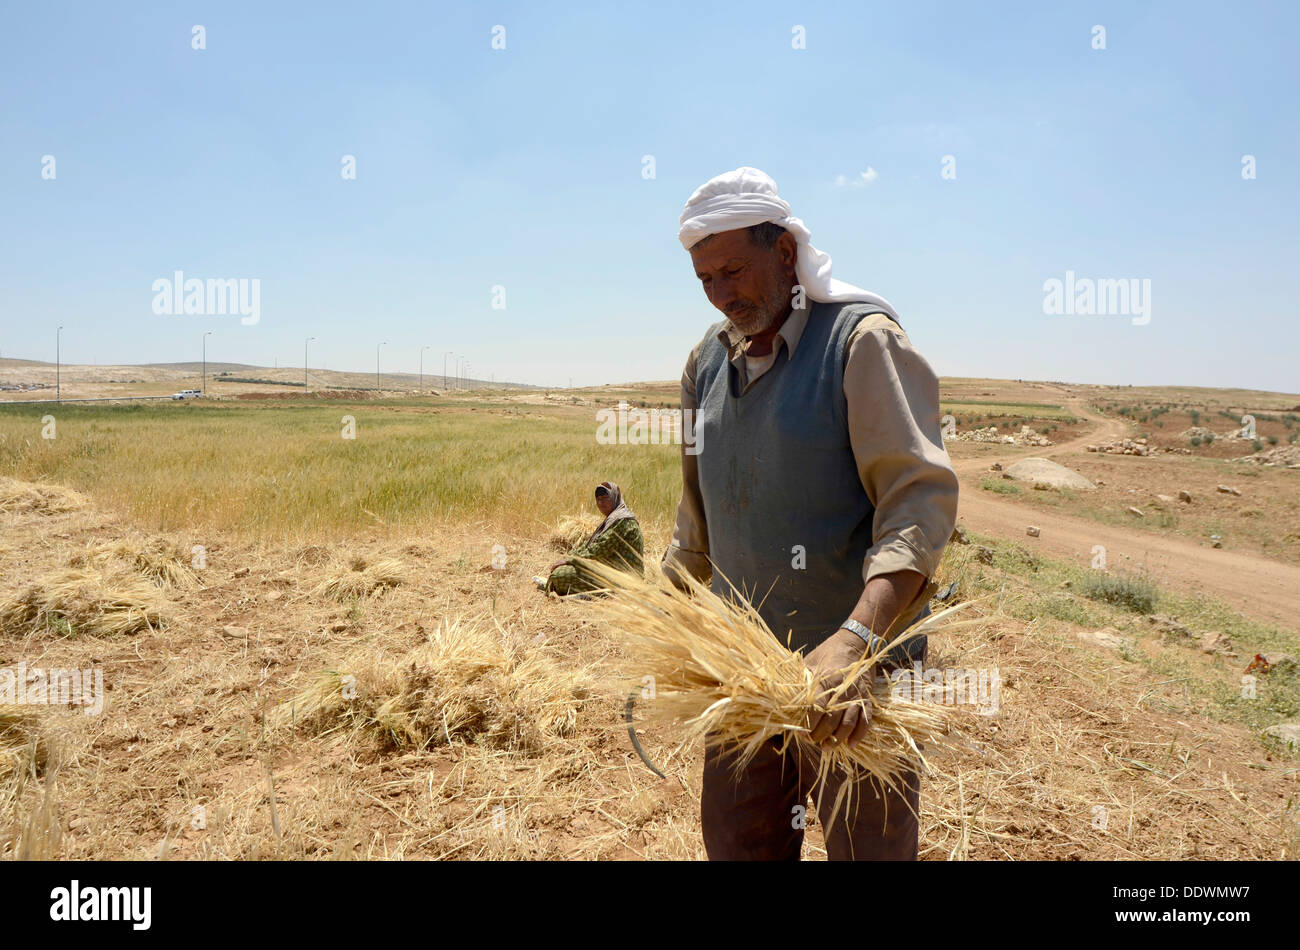 Manual wheat harvesting with a sickle  - Stock Image